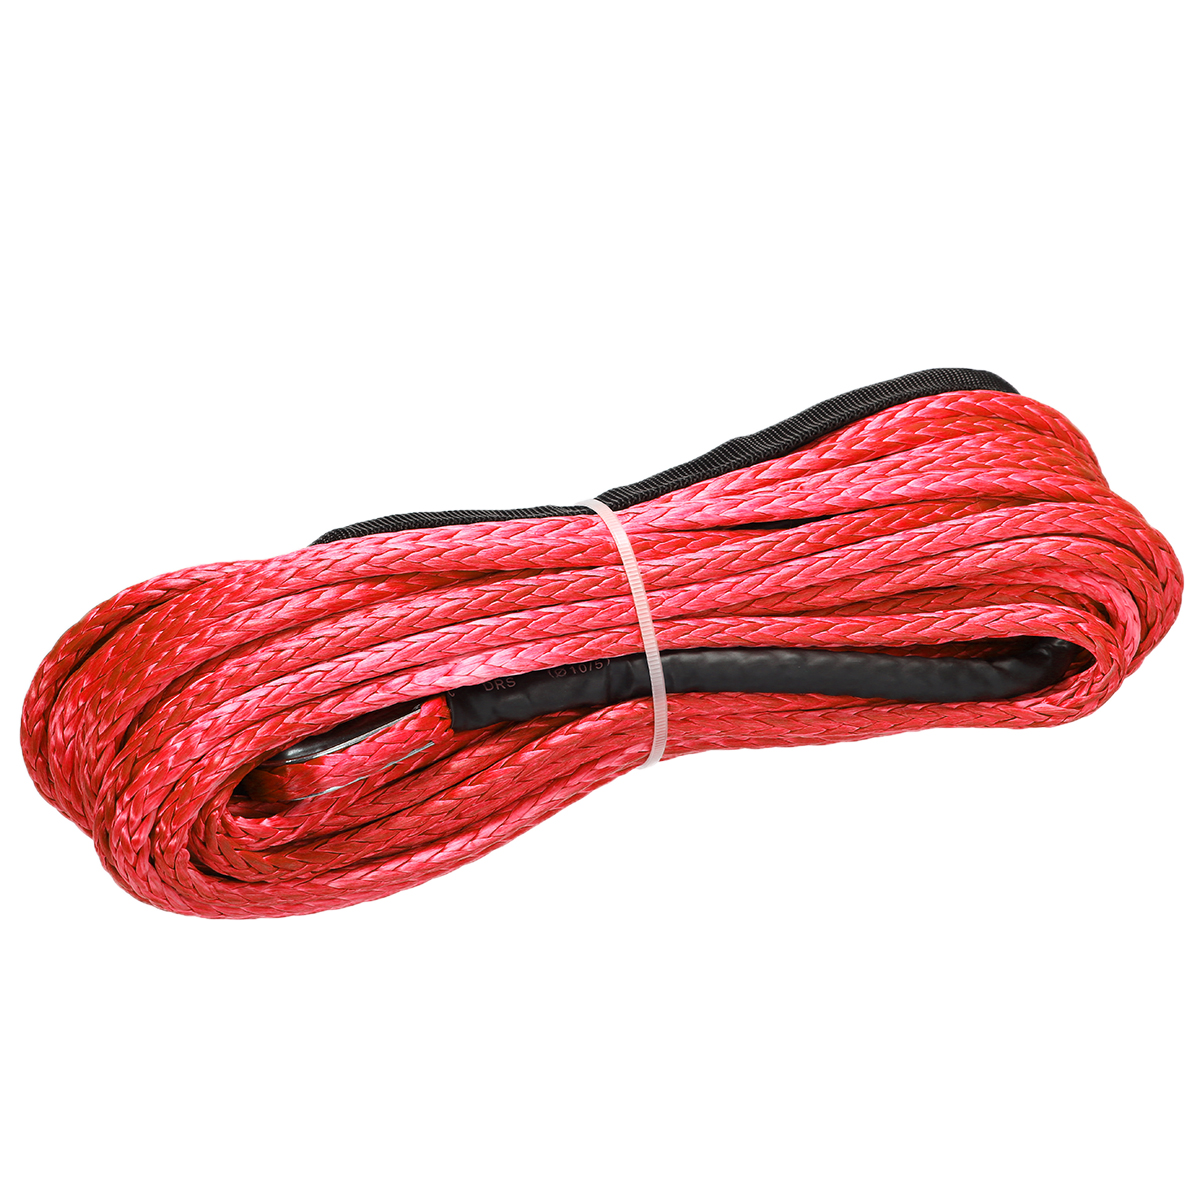 1/4'' x 50' 7000lbs Synthetic Winch Rope Cable Line  Car Wash Maintenance String for ATV UTV Off Road Red-in Towing Ropes from Automobiles & Motorcycles